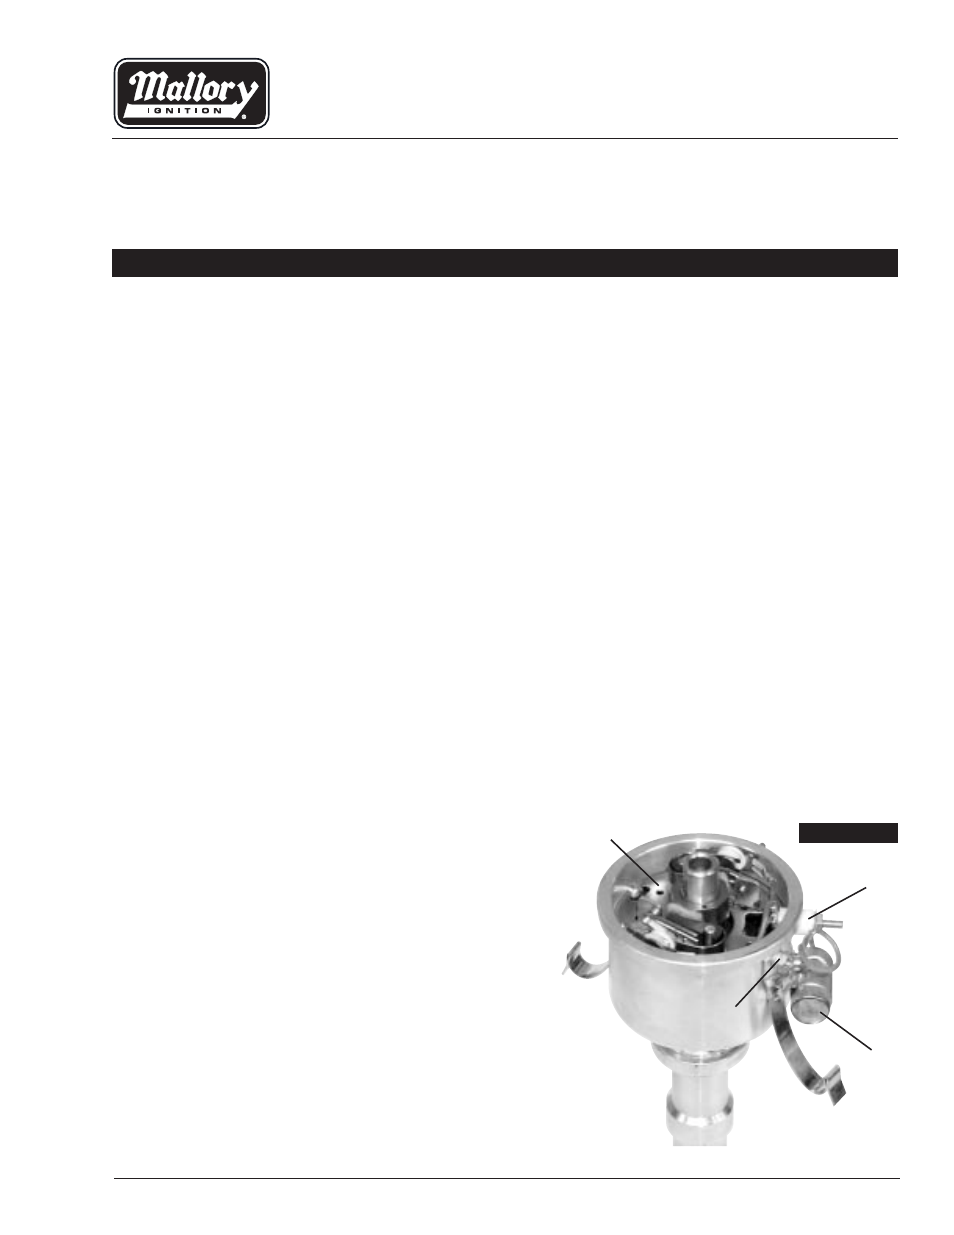 Mallory Ignition Wiring Diagram Unilite from i0.wp.com